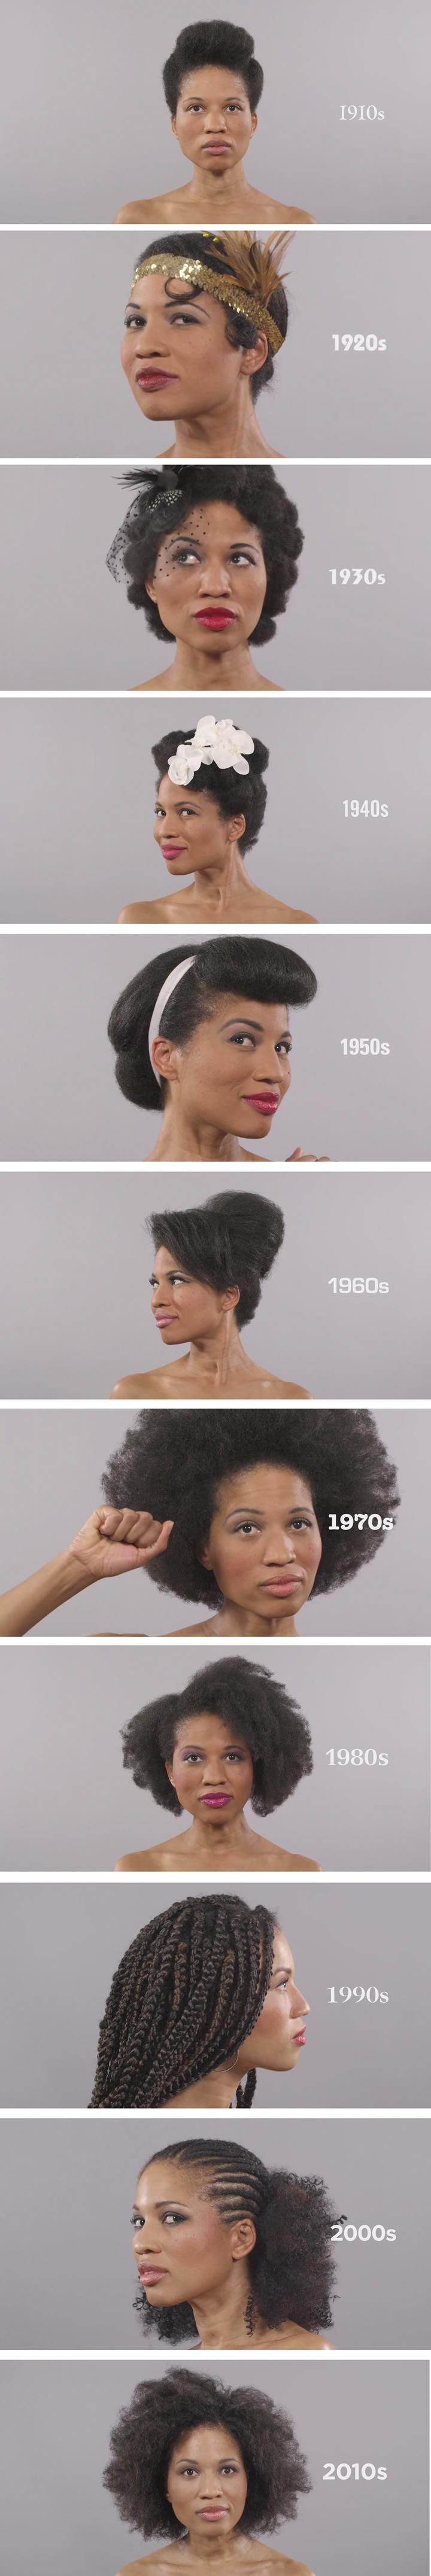 Woman demonstrates even more gorgeous styles in 100 years of beauty